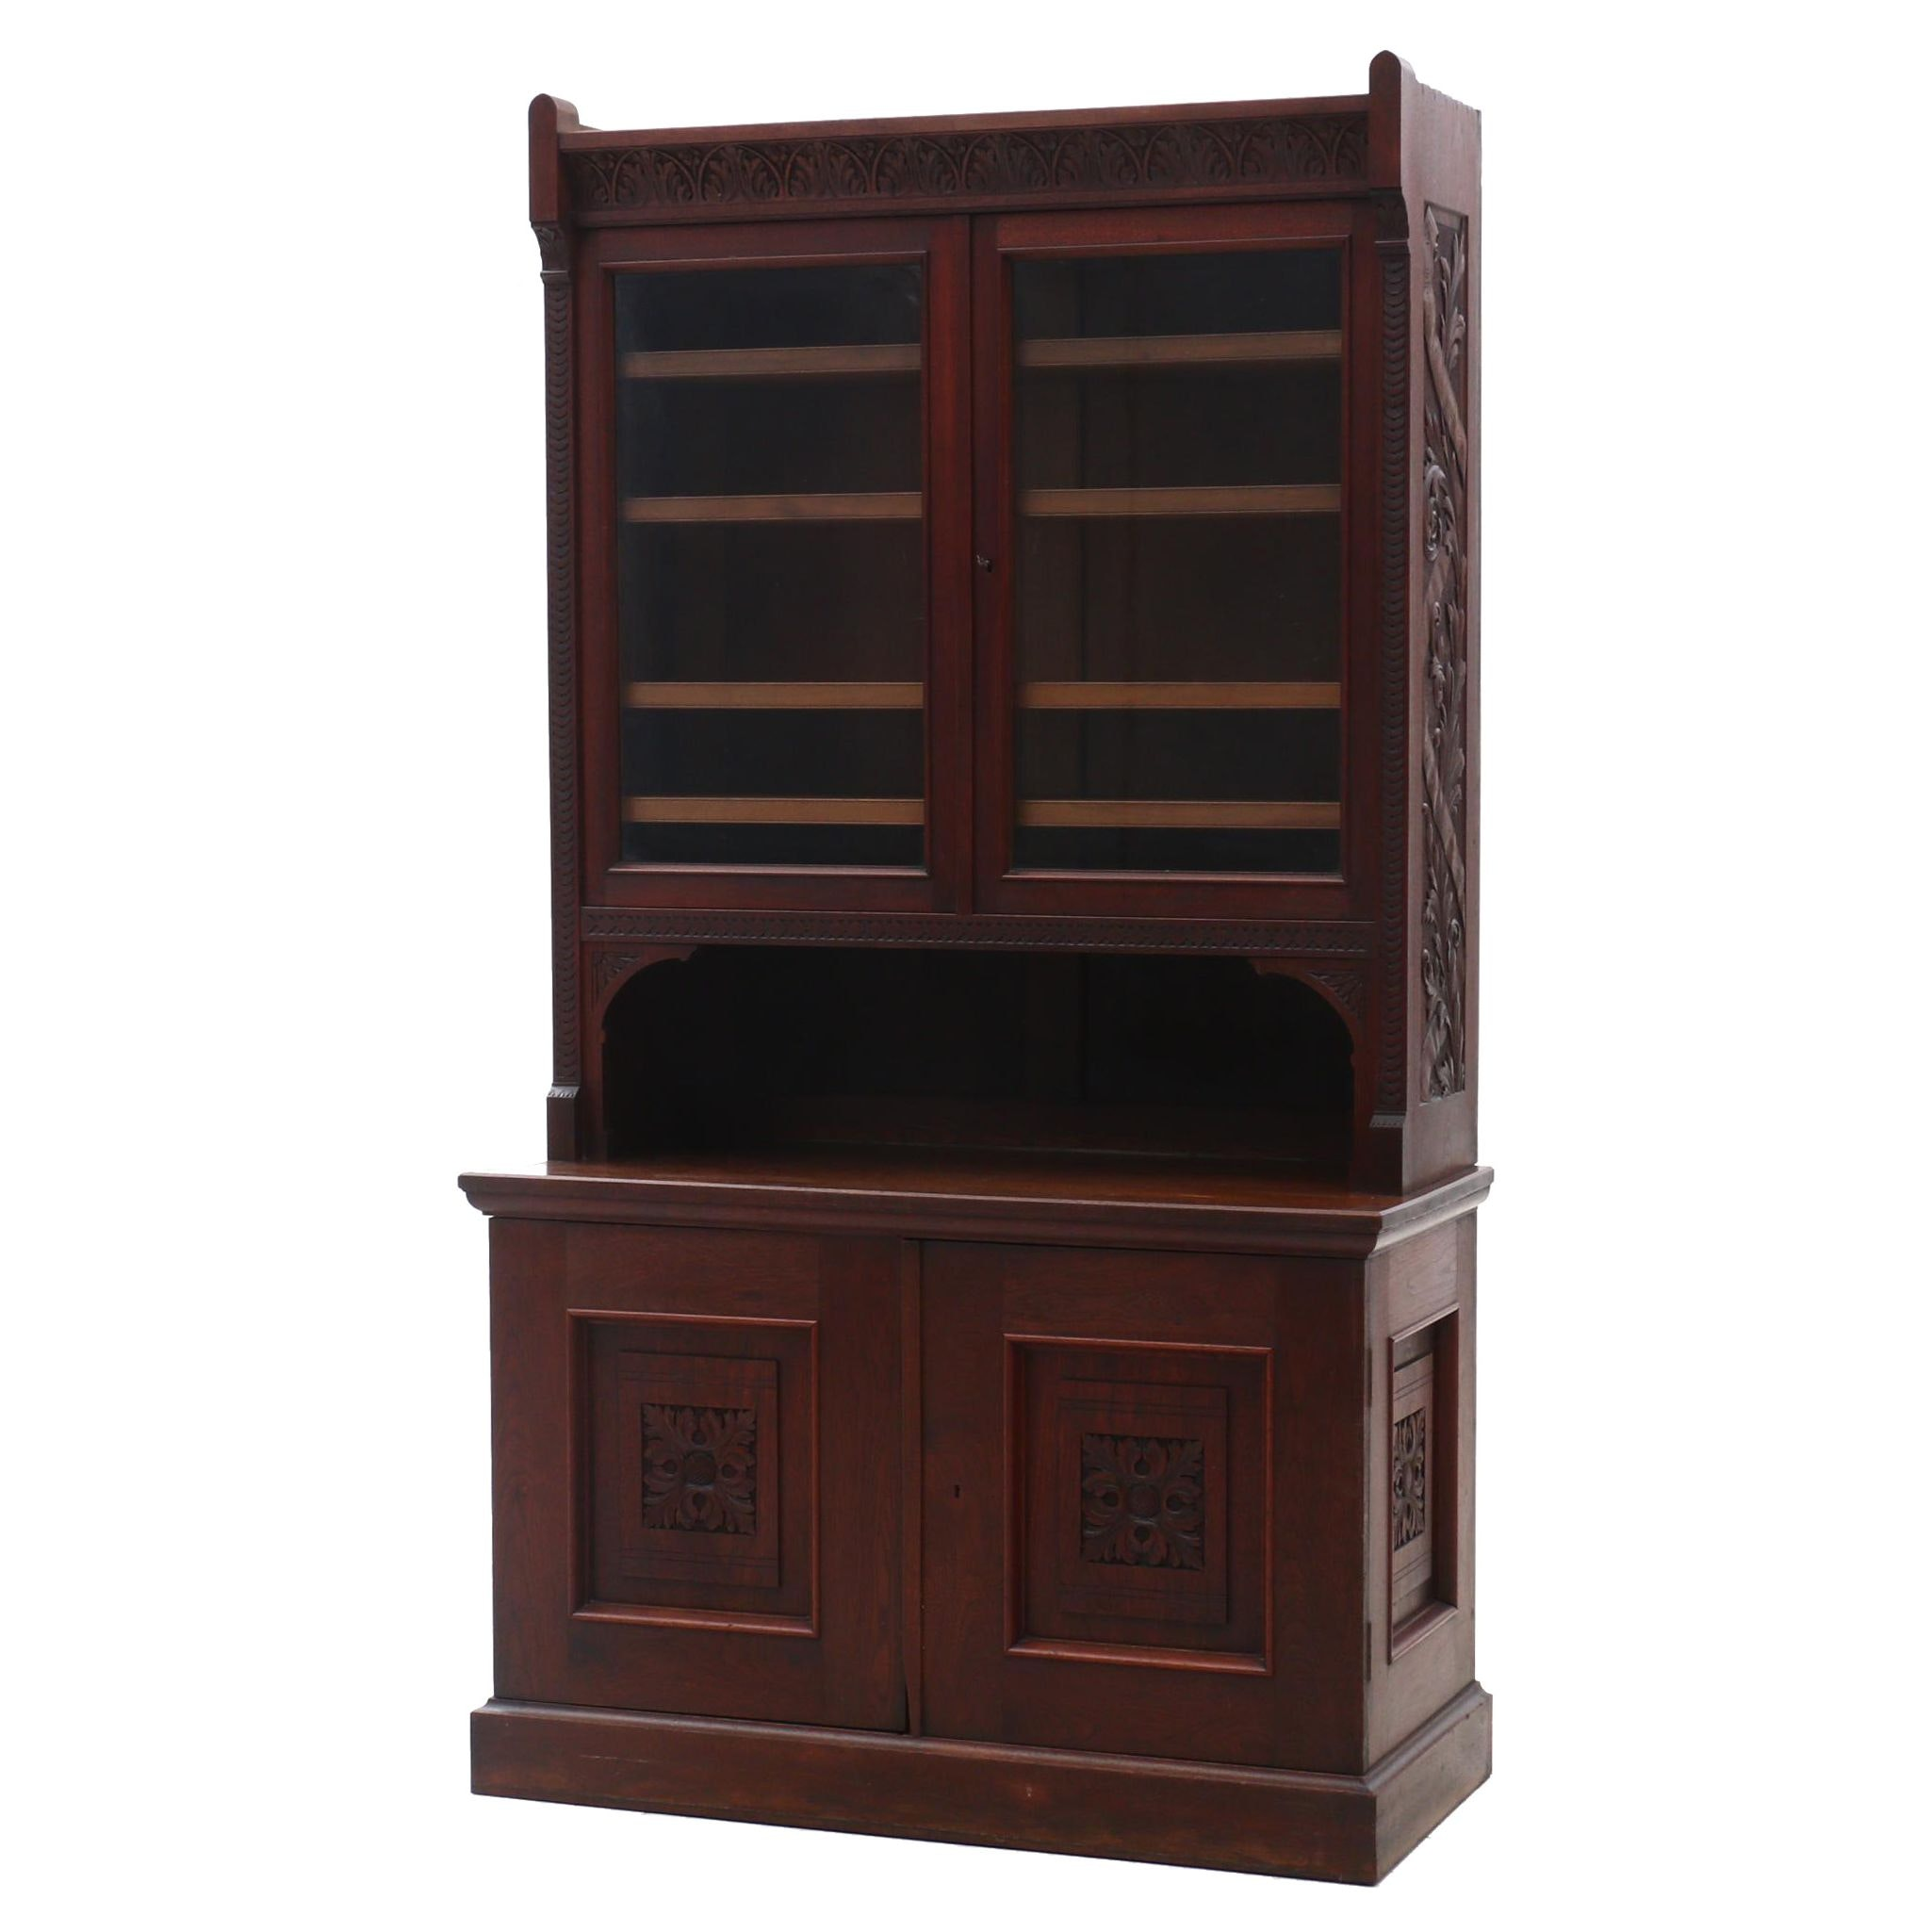 Cincinnati Art Carved Walnut Bookcase, Circa 1880